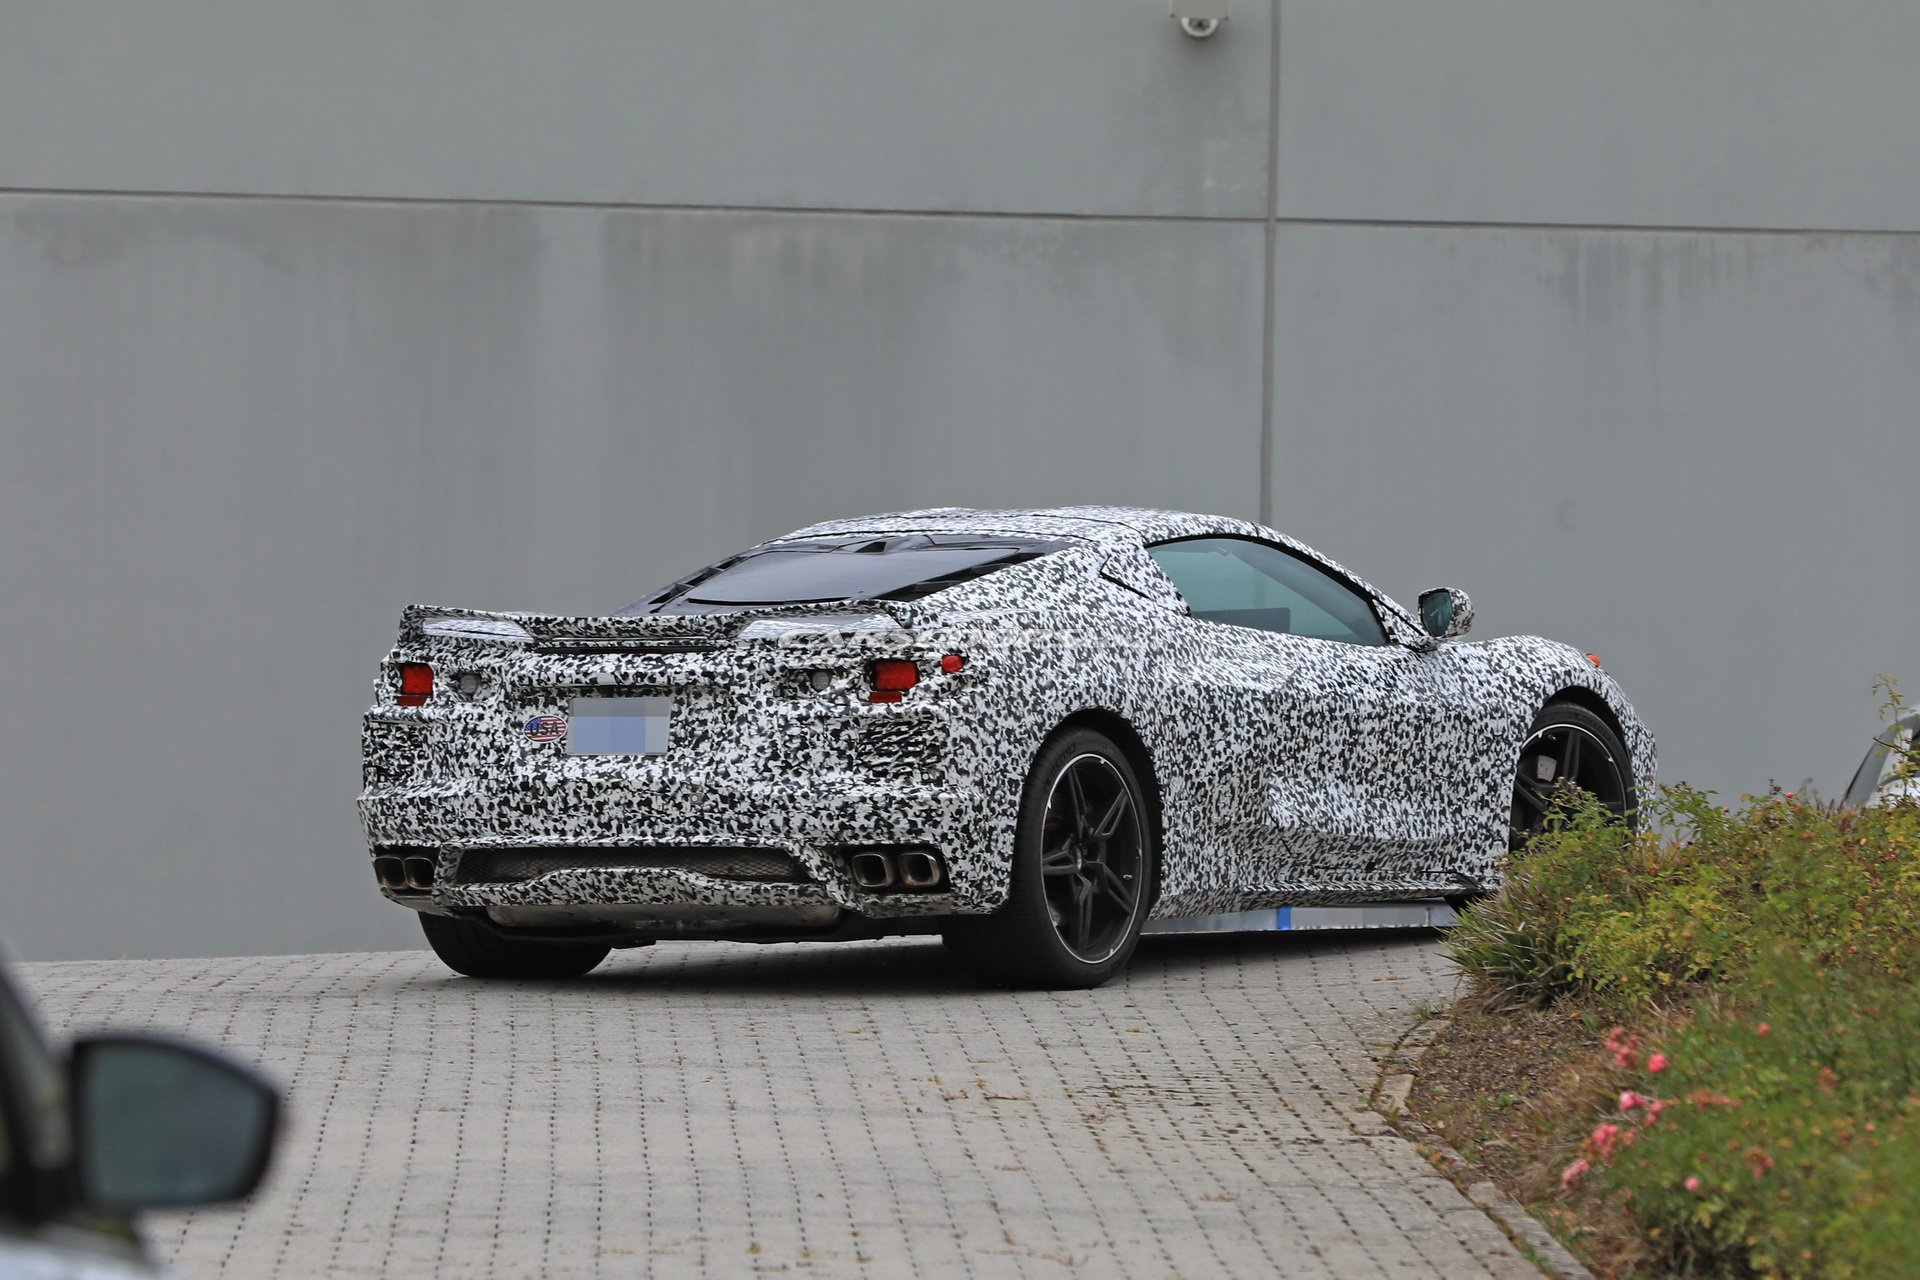 The 2020 Mid-Engine Corvette photographed near the Nurburgring on September 3, 2018.